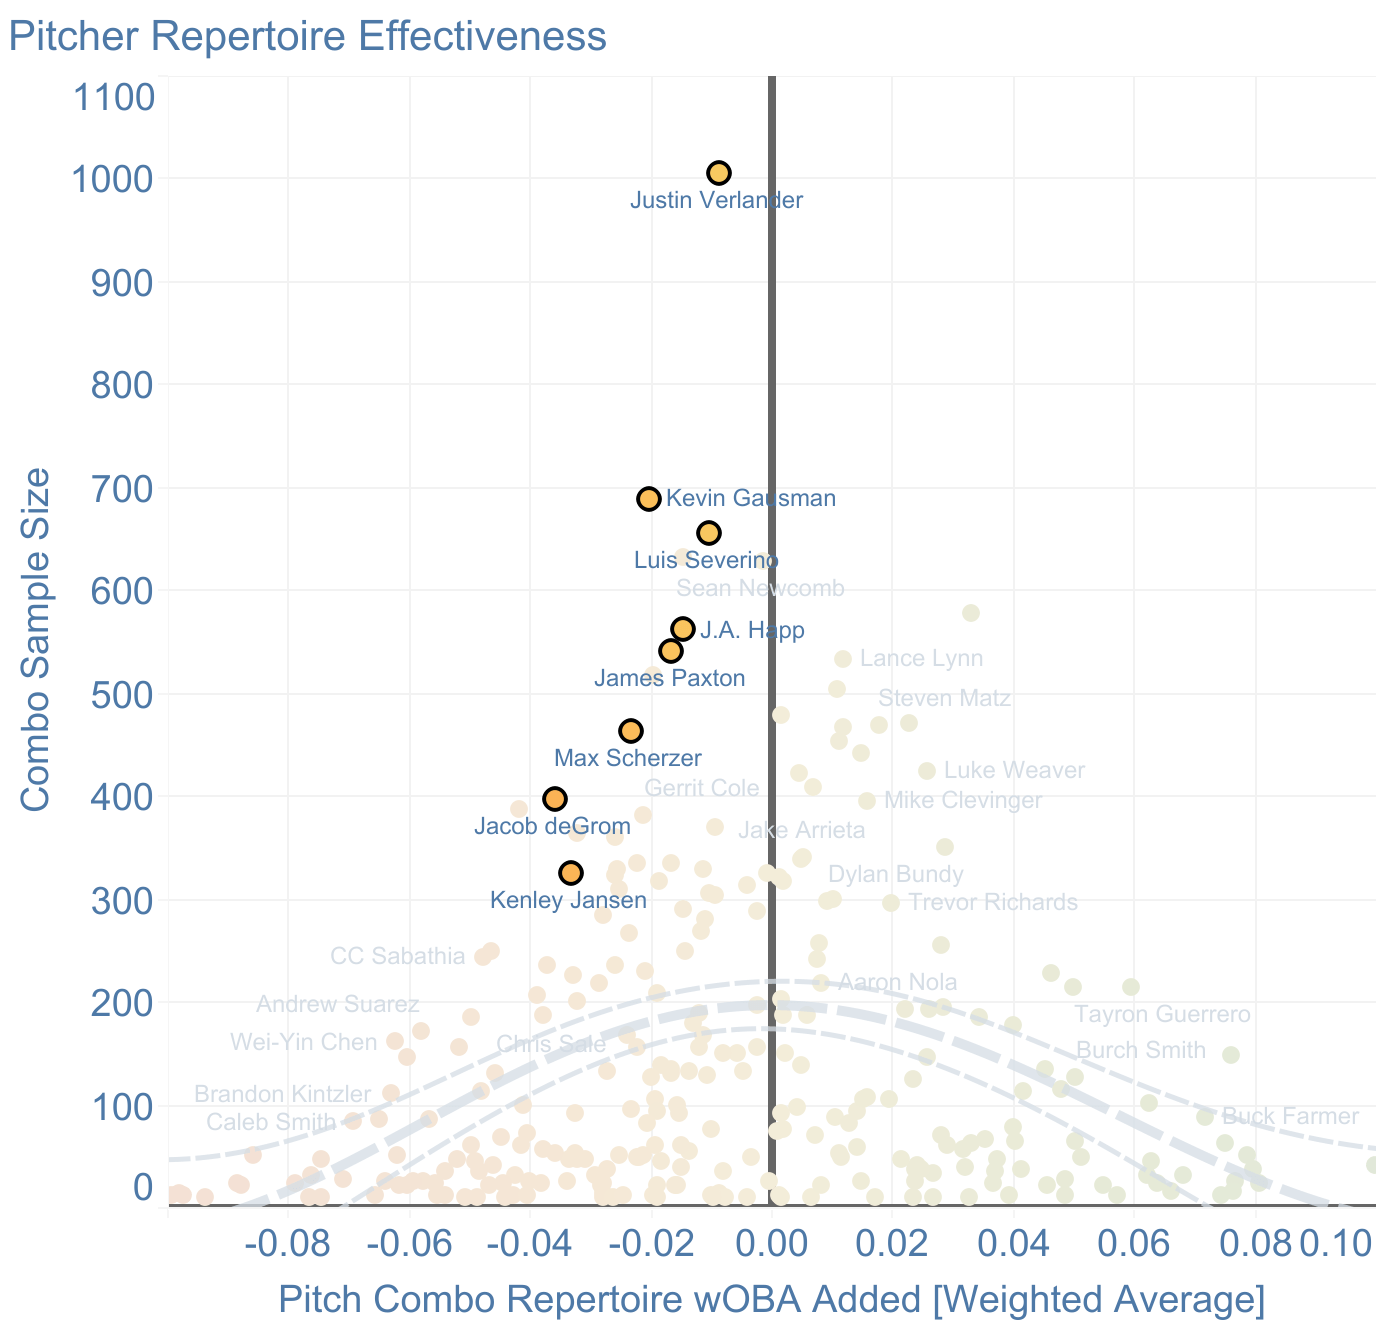 2018 Combo Repertoire wOBA Added by Pitcher in Major League Baseball: Better pitchers have negative combo repertoire wOBA Added, which means this metric is a leading indicator for overall pitcher effectiveness.